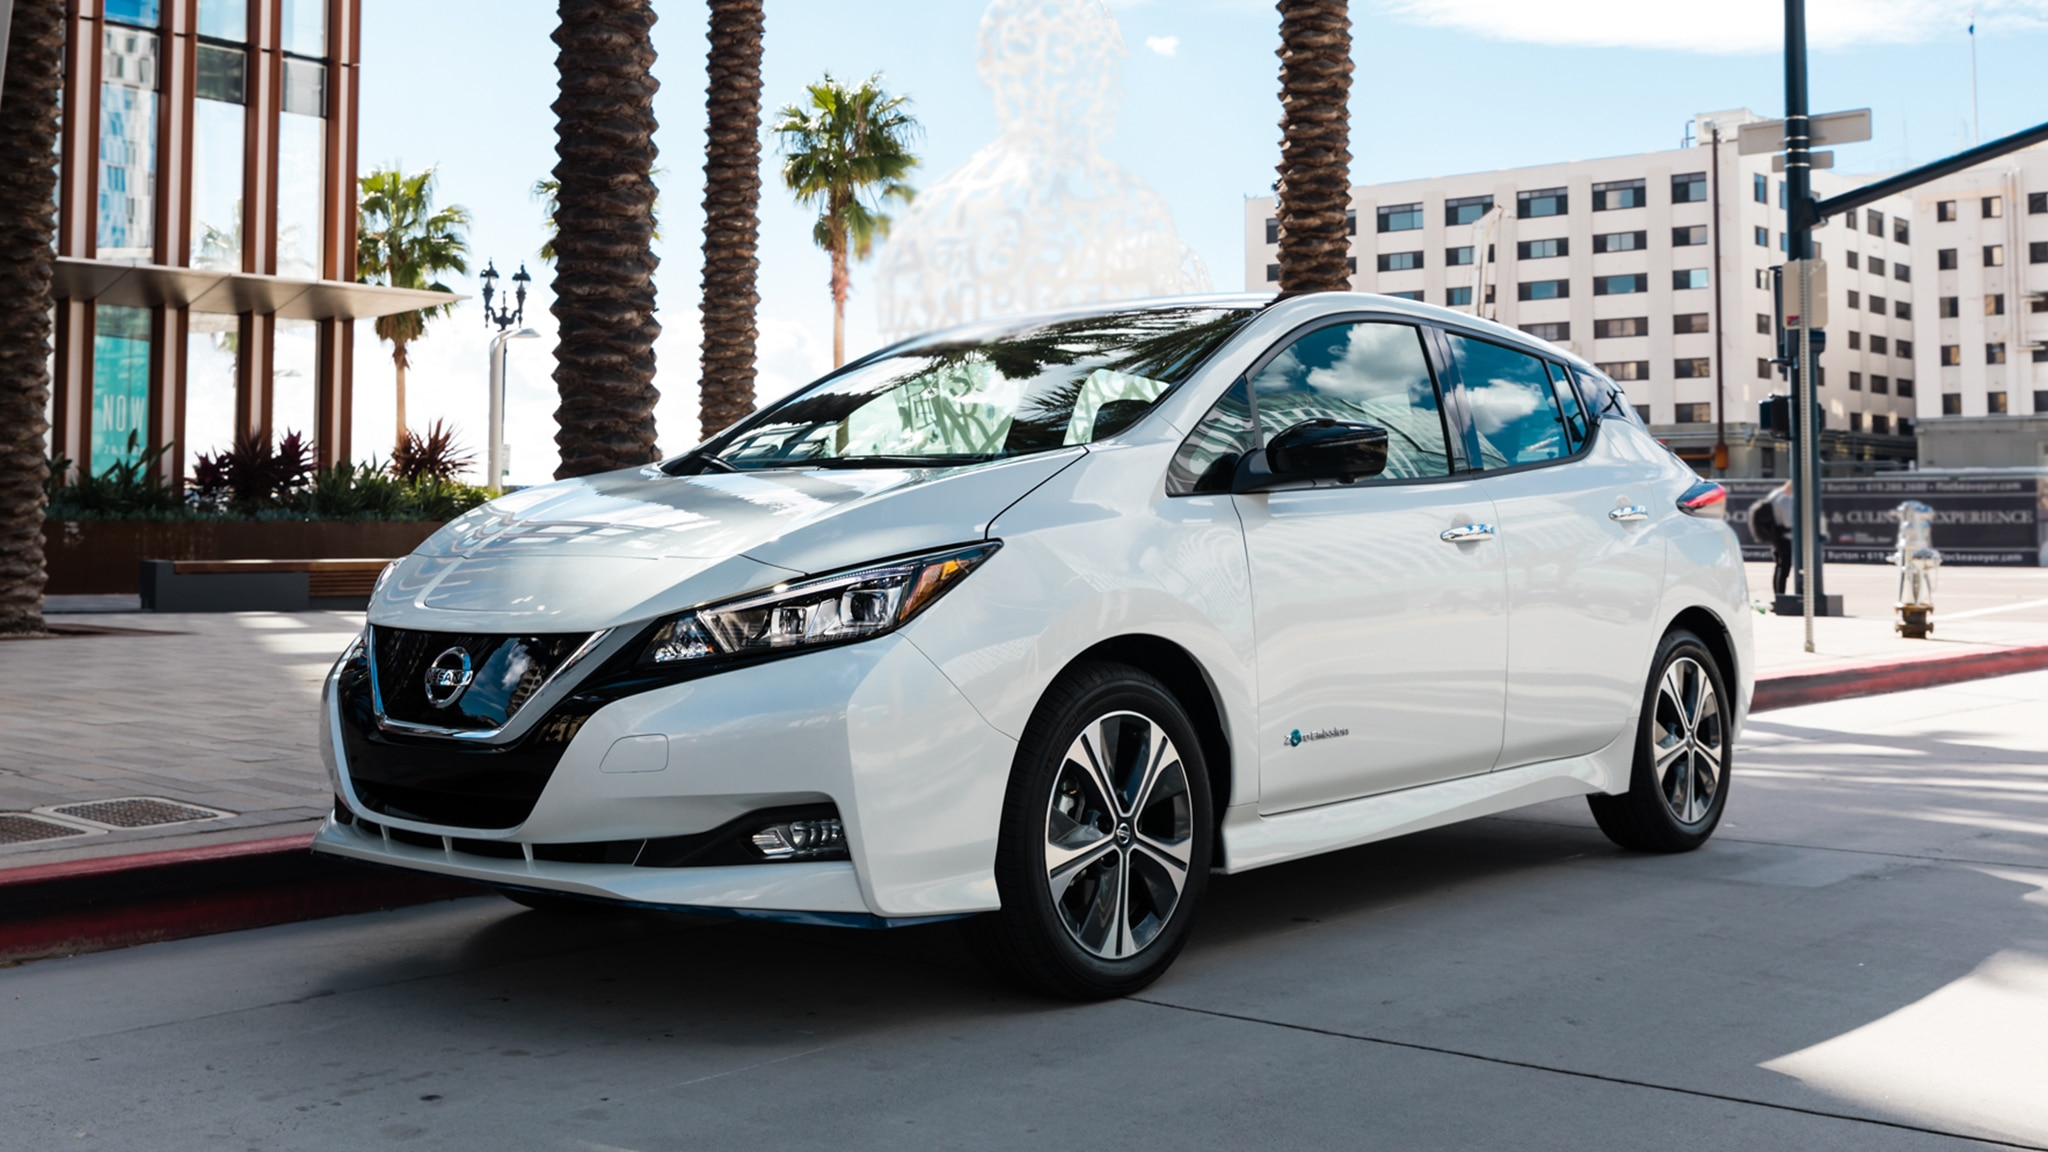 2019 nissan leaf plus first drive review  is more range enough